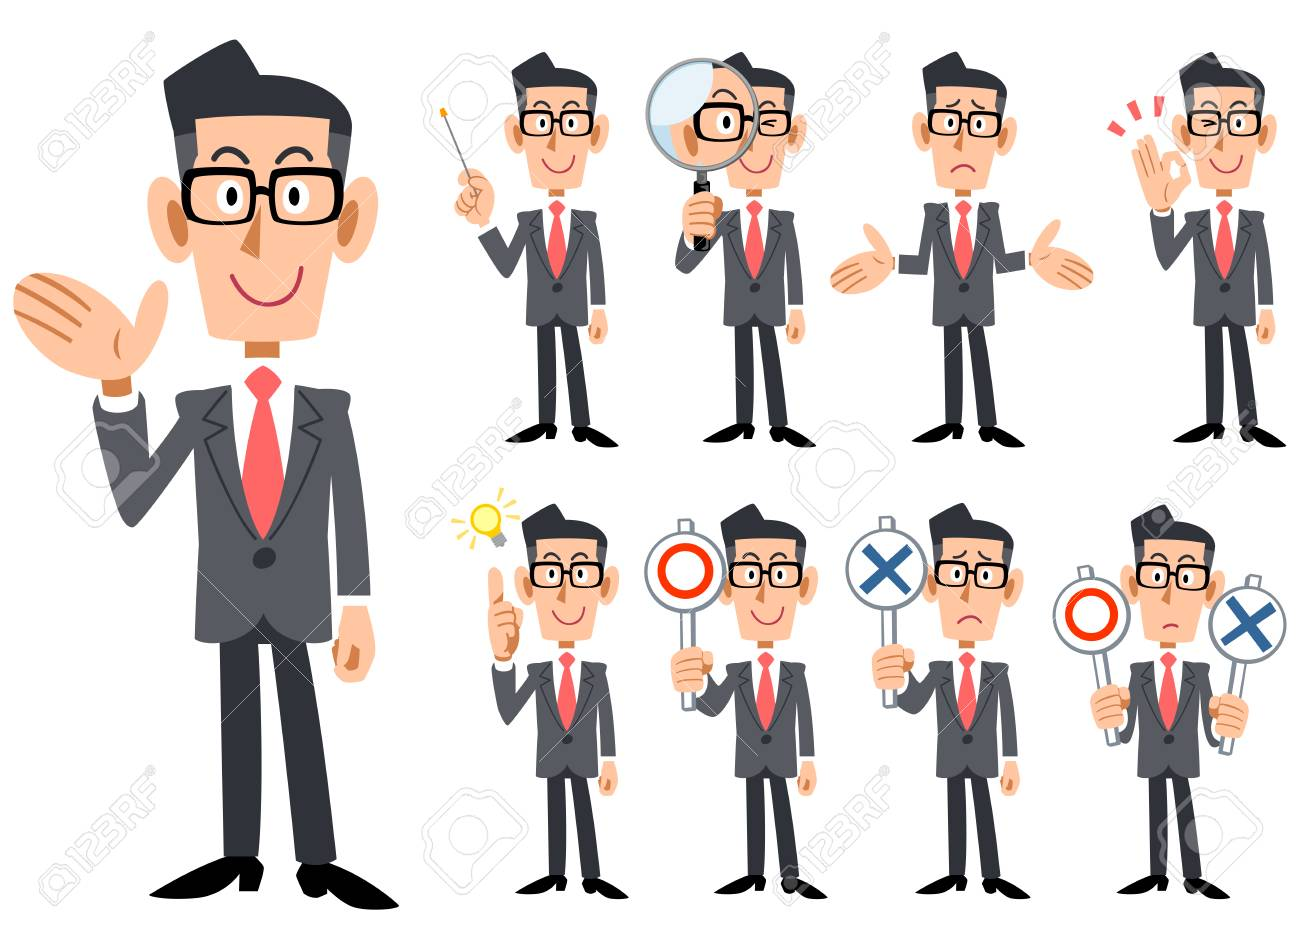 Gestures and expressions of glasses-worn businessmen wearing red tie and gray suit - 104603286